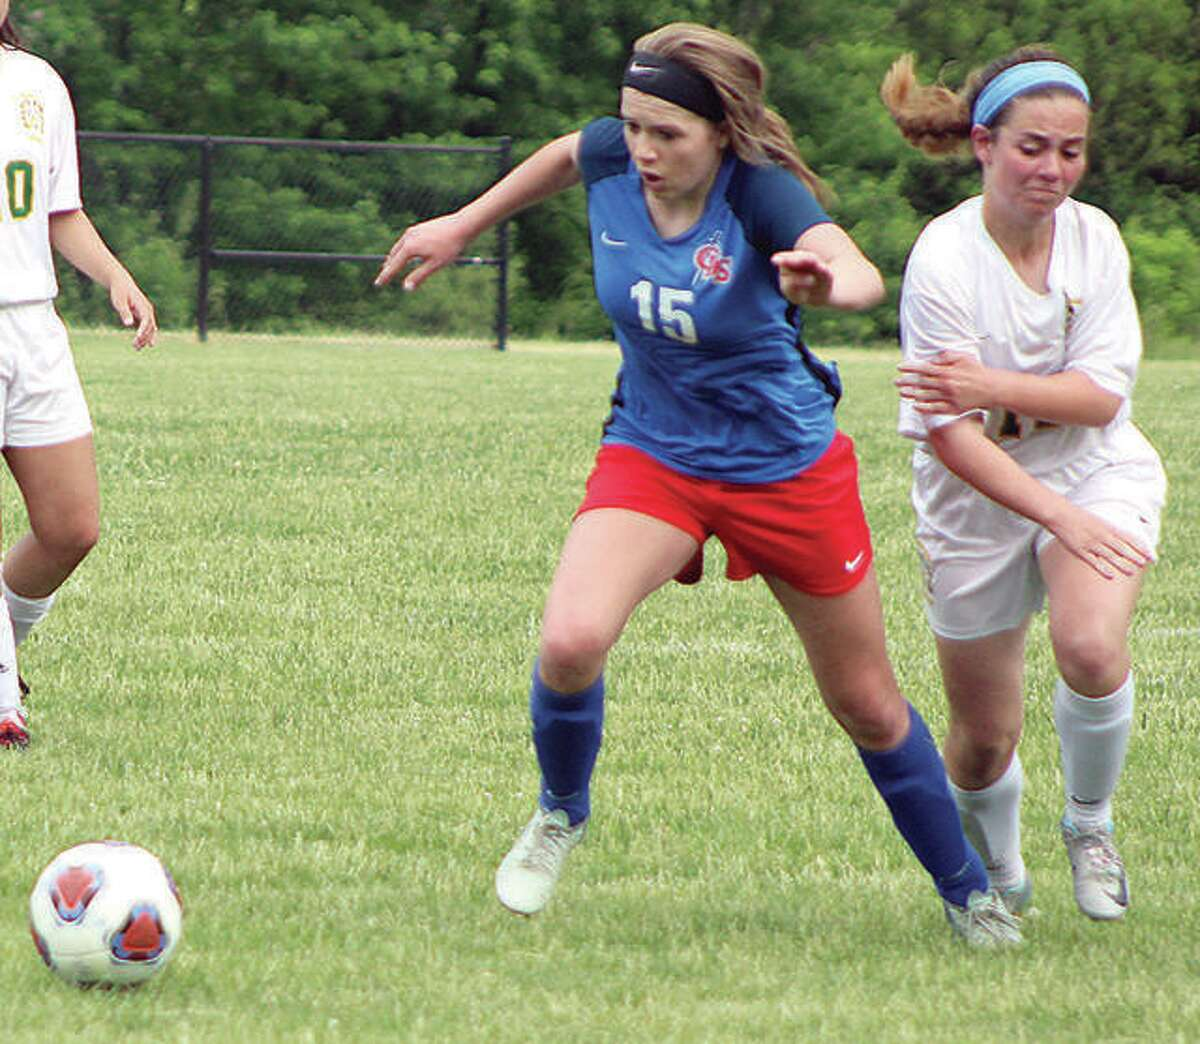 Gracie Reels (15) of Carlinville outraces a St. Thomas More player during the 2018 Class A Sectional final in Decatur. Reels, a three-sport standout at Carlinville, saw her senior season end prematurely when she tore an ACL early in the spring soccer season.